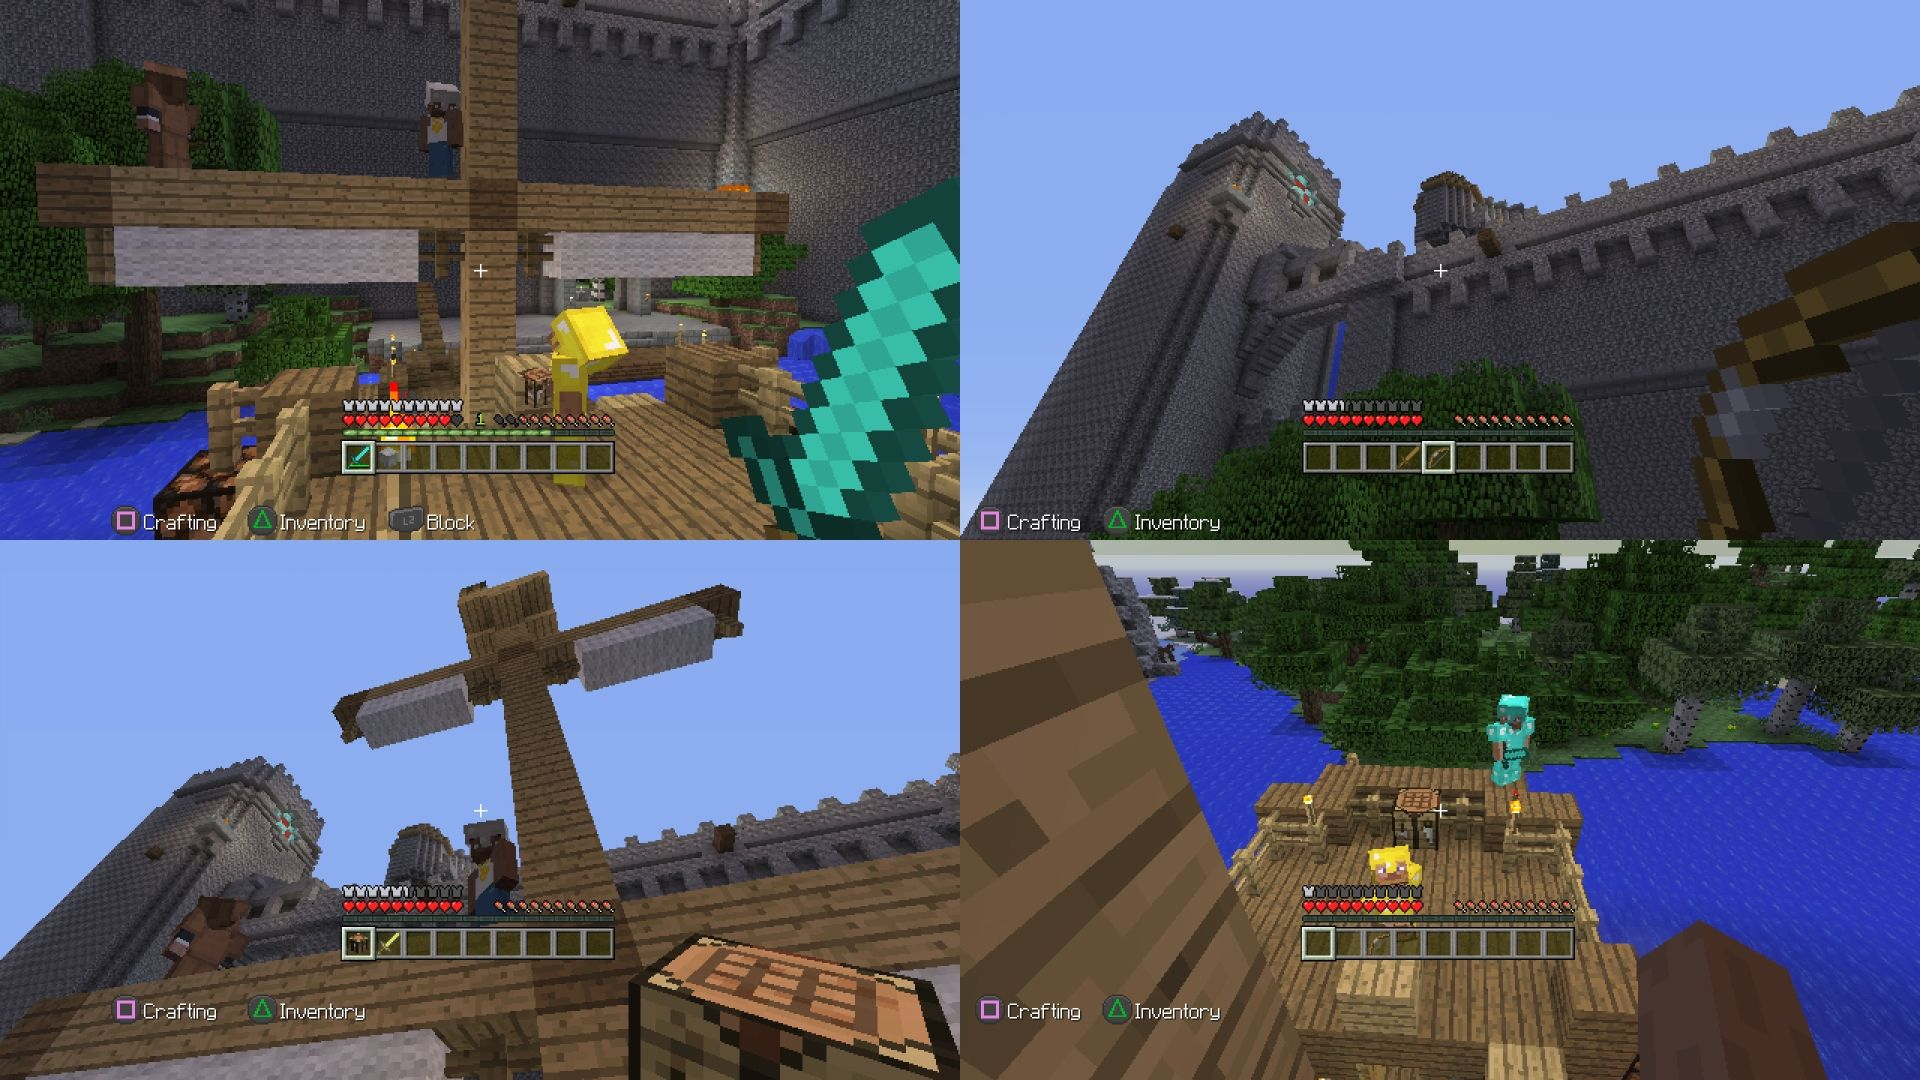 Minecraft: PlayStation 4 Edition (PS4) - 3